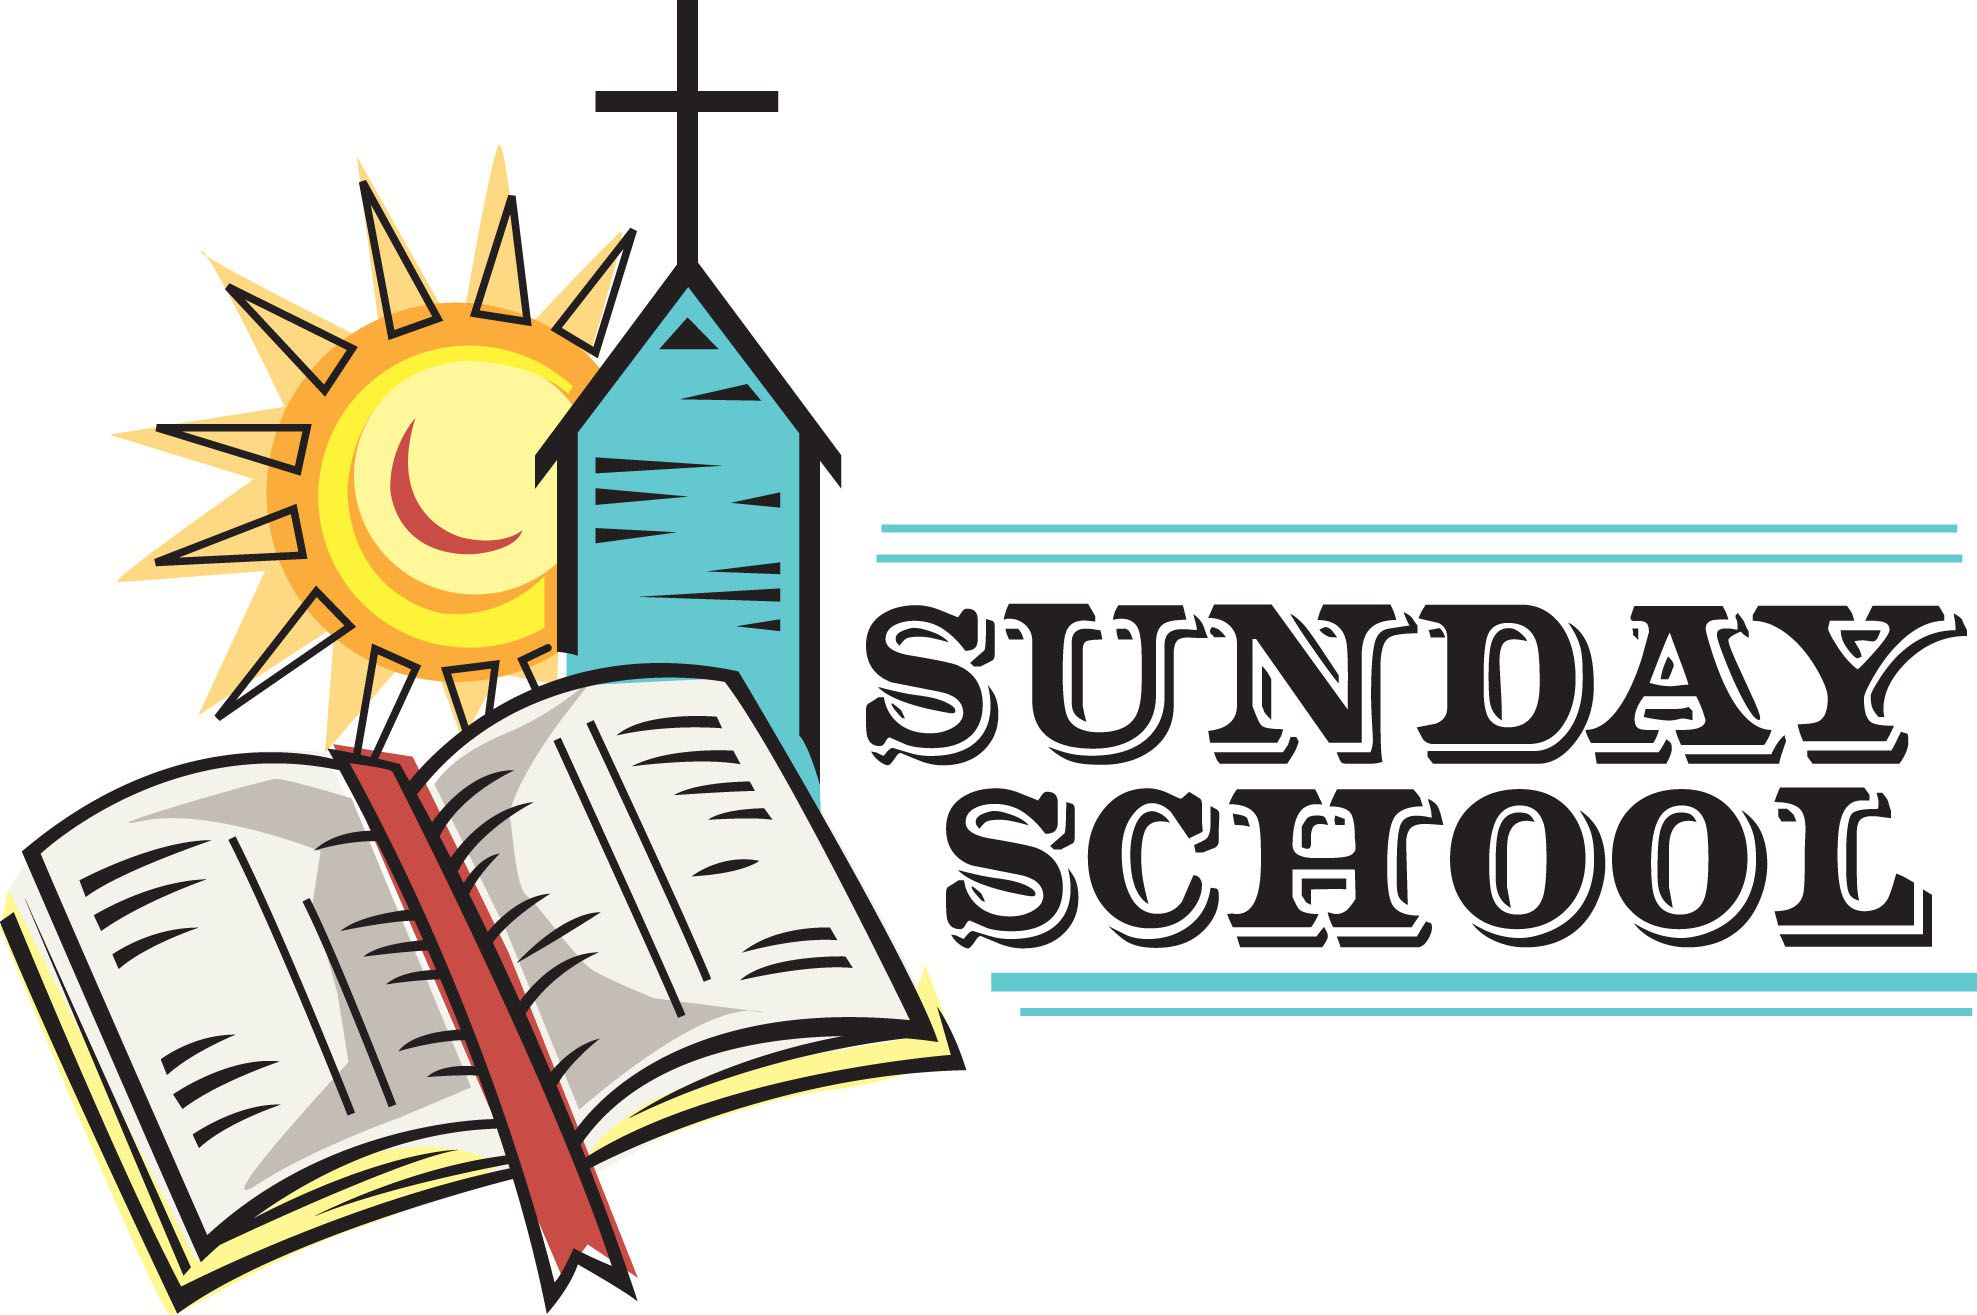 009 Frightening Free Sunday School Flyer Template Picture  TemplatesFull